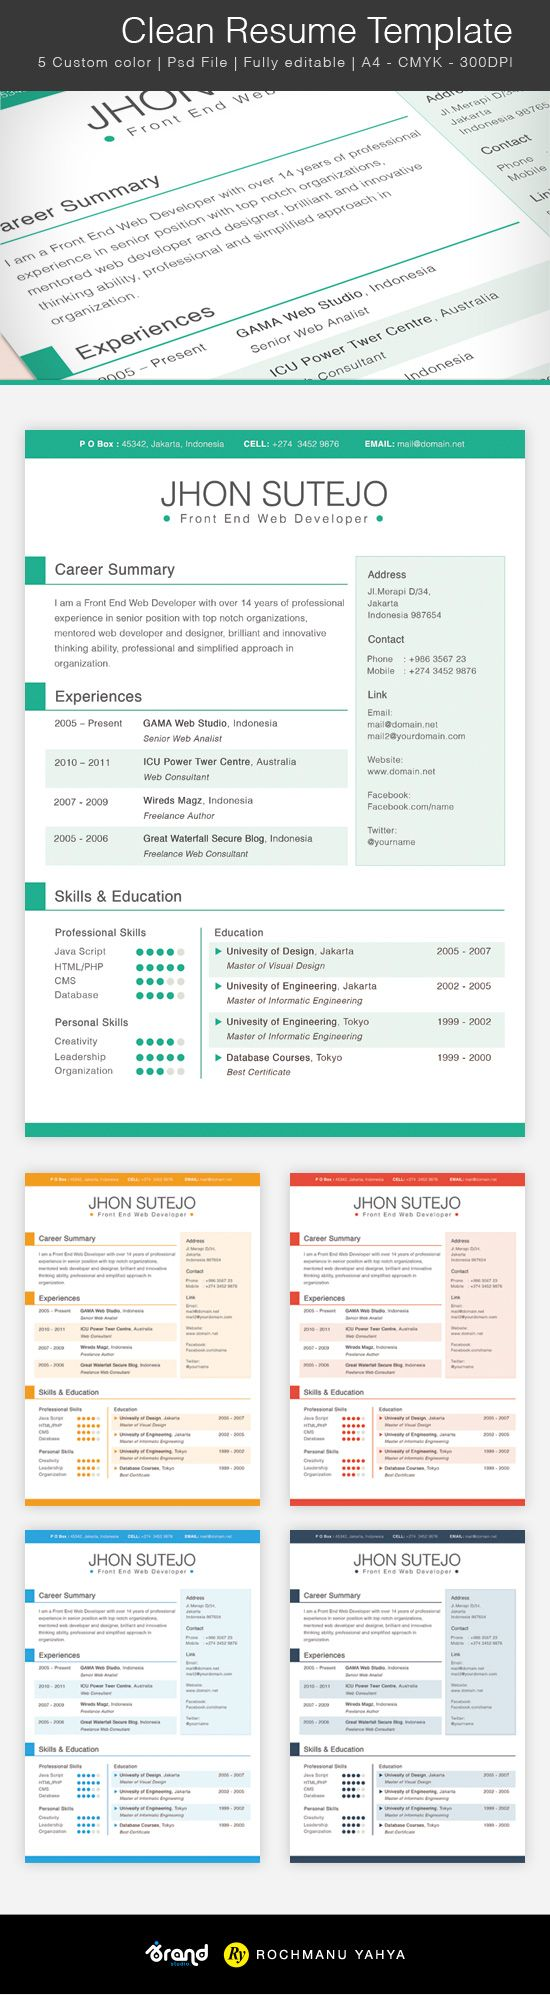 Free Clean Resume Template   5 Colors  Resume Free